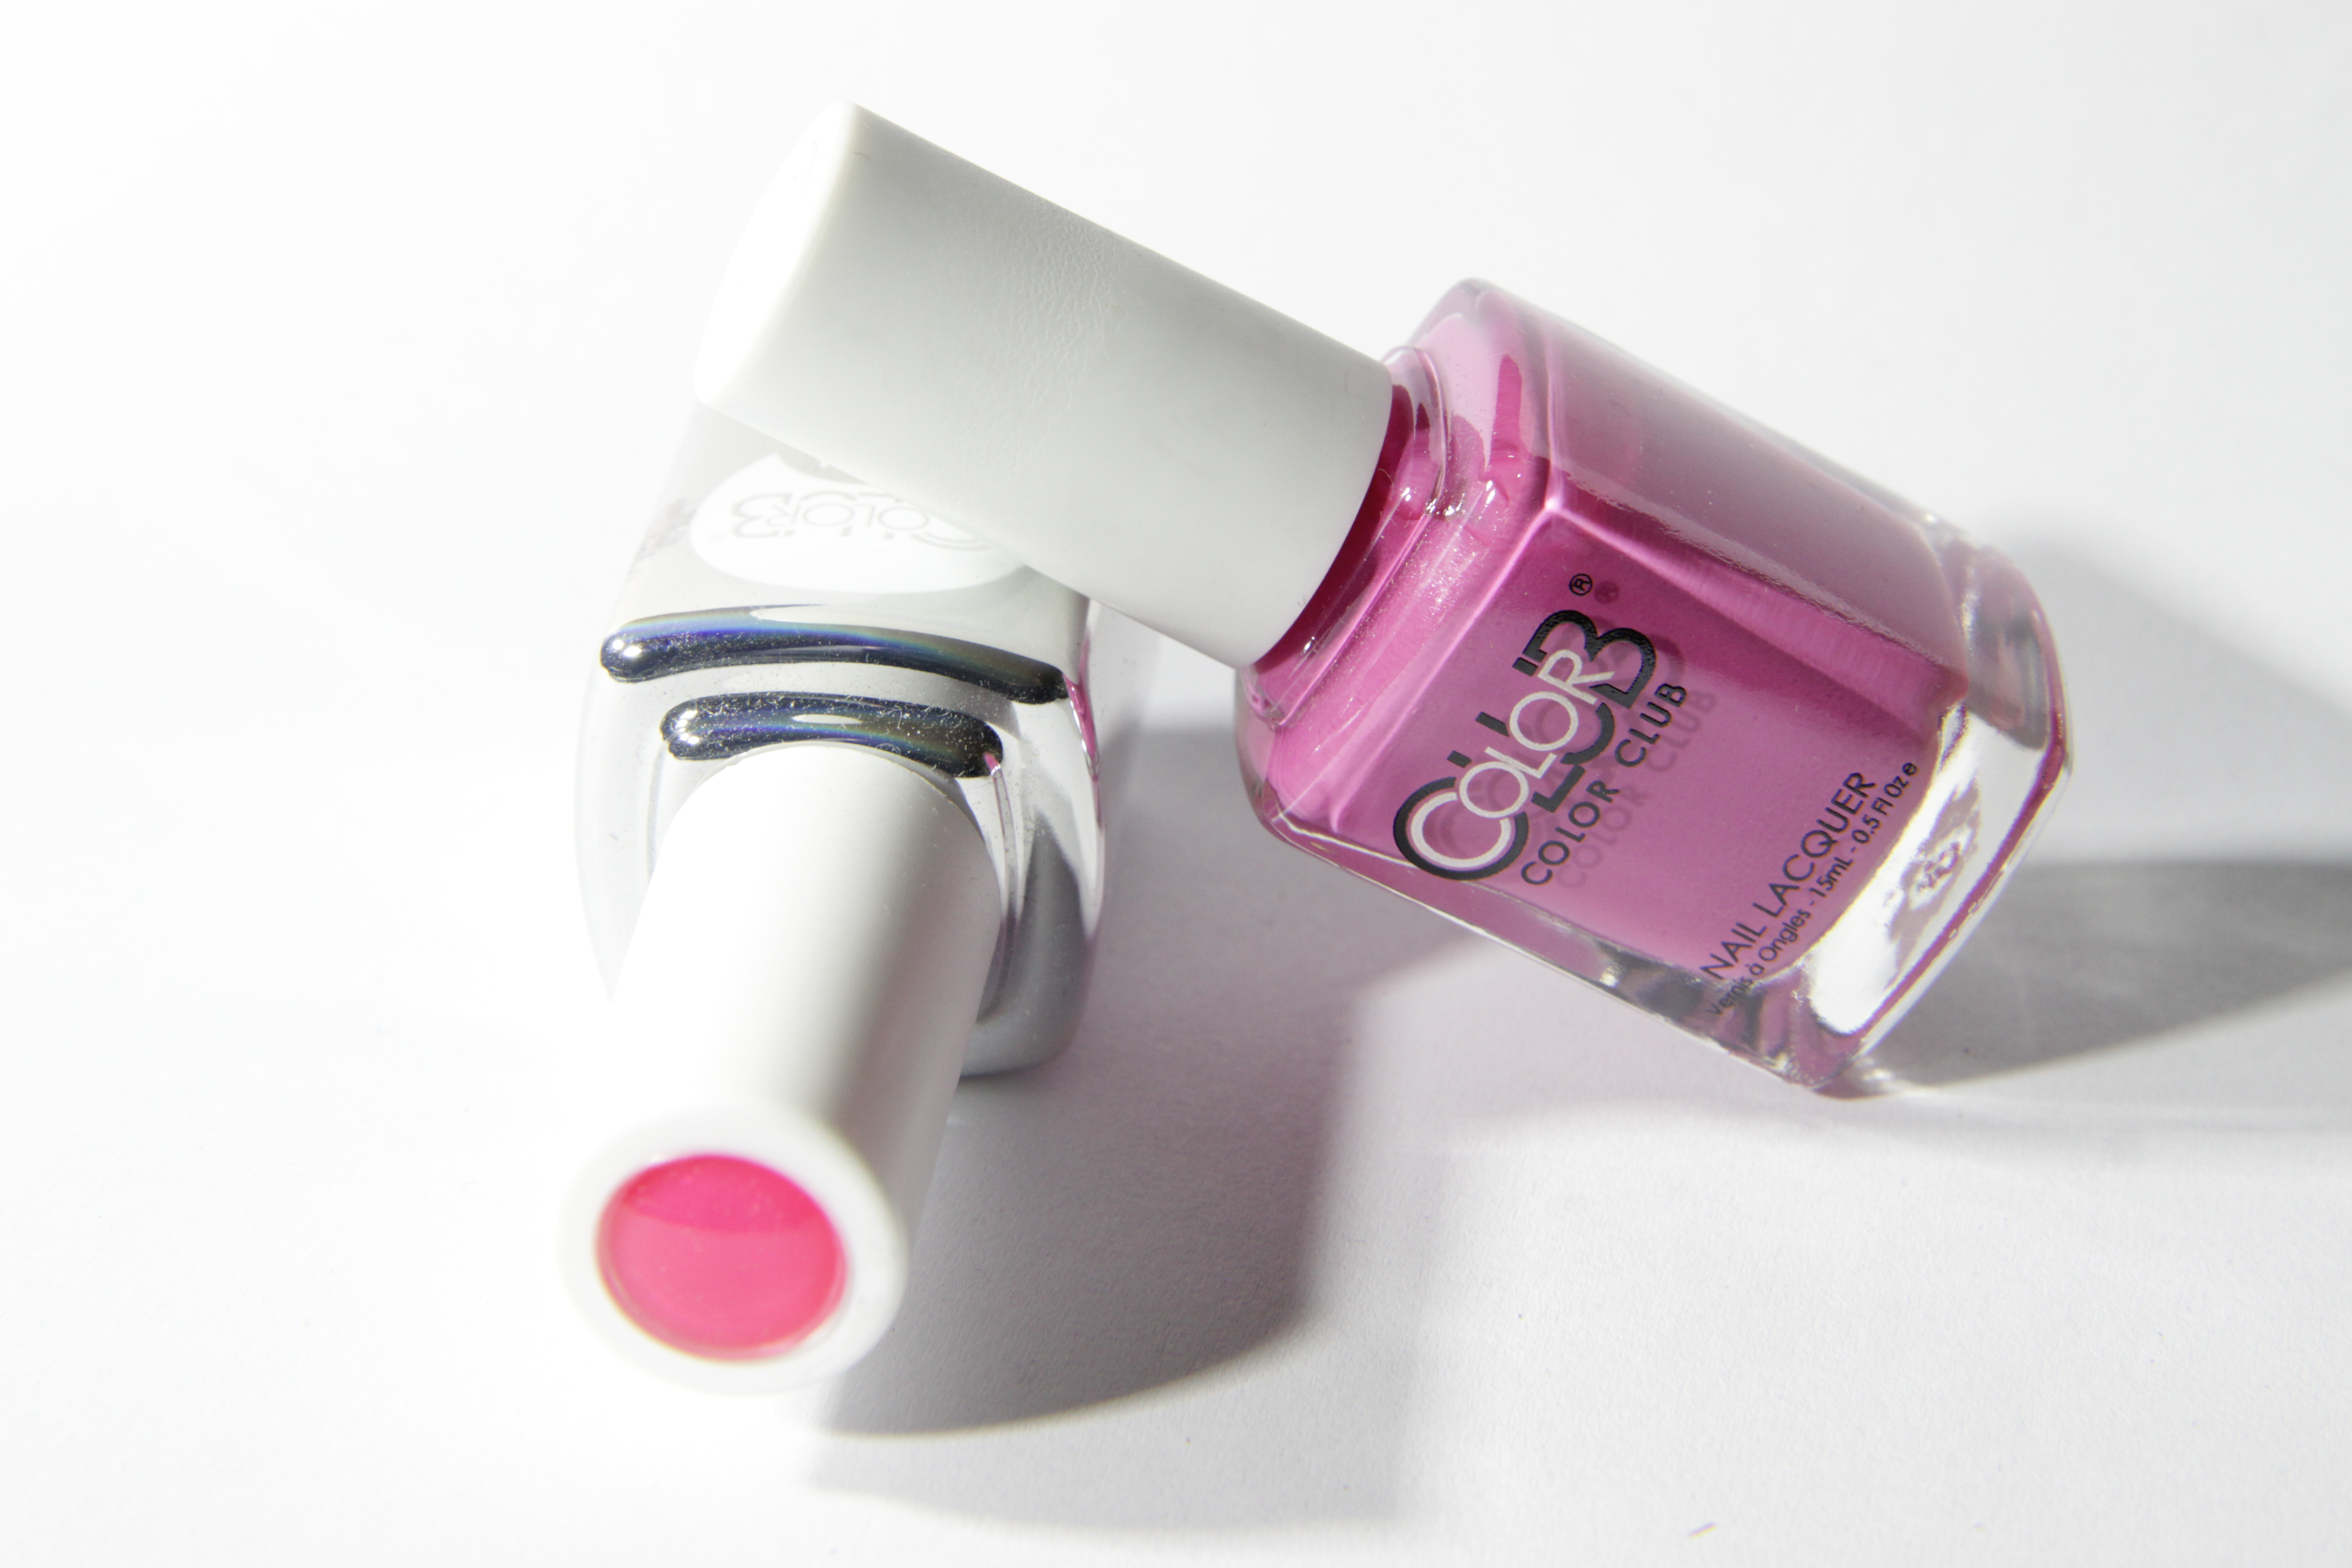 #0803 IN BLOOM Color Club Duo Nagellack Nail Lacquer and Soak-Off Gel Polish pink rosa